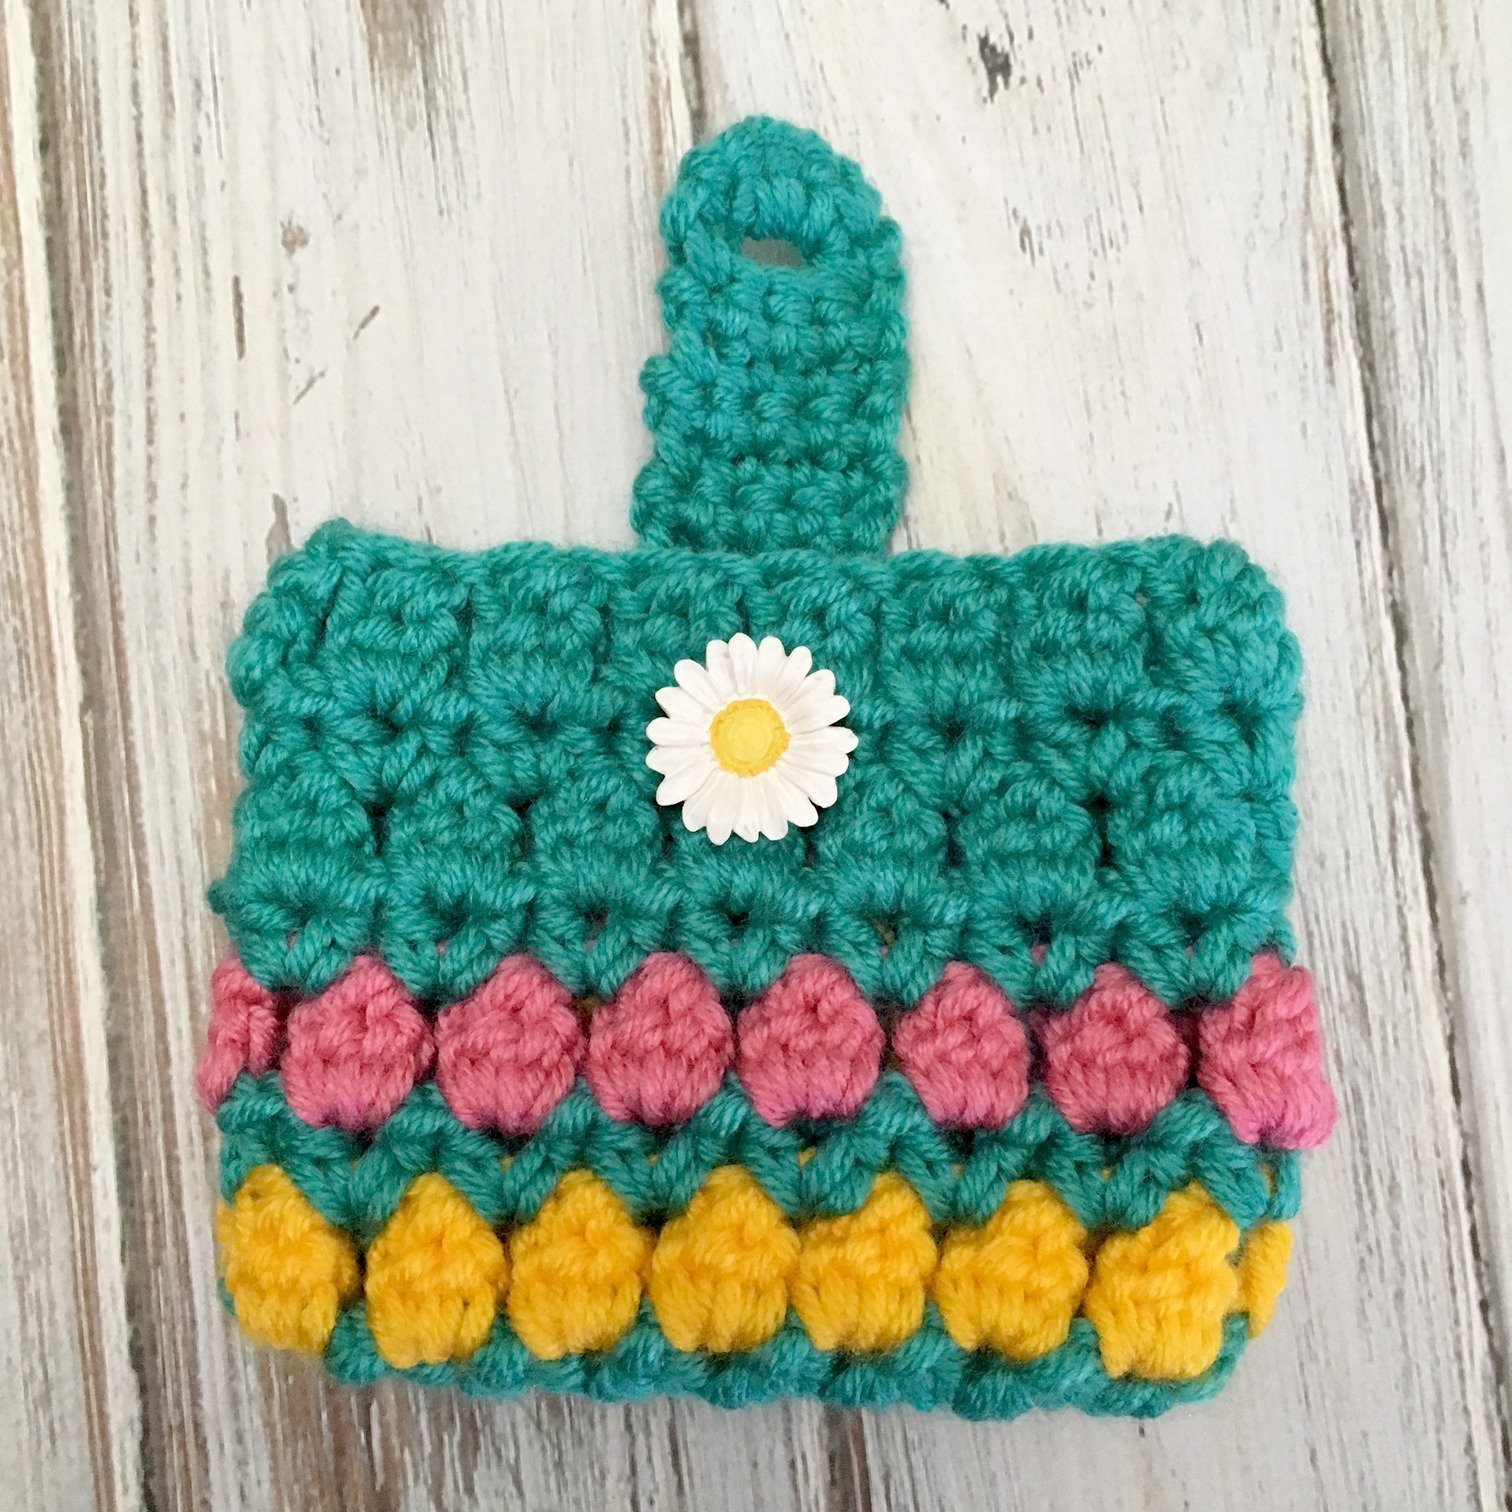 Learn to crochet this quick and easy project with the free pattern for the Summer Fun Coin Purse